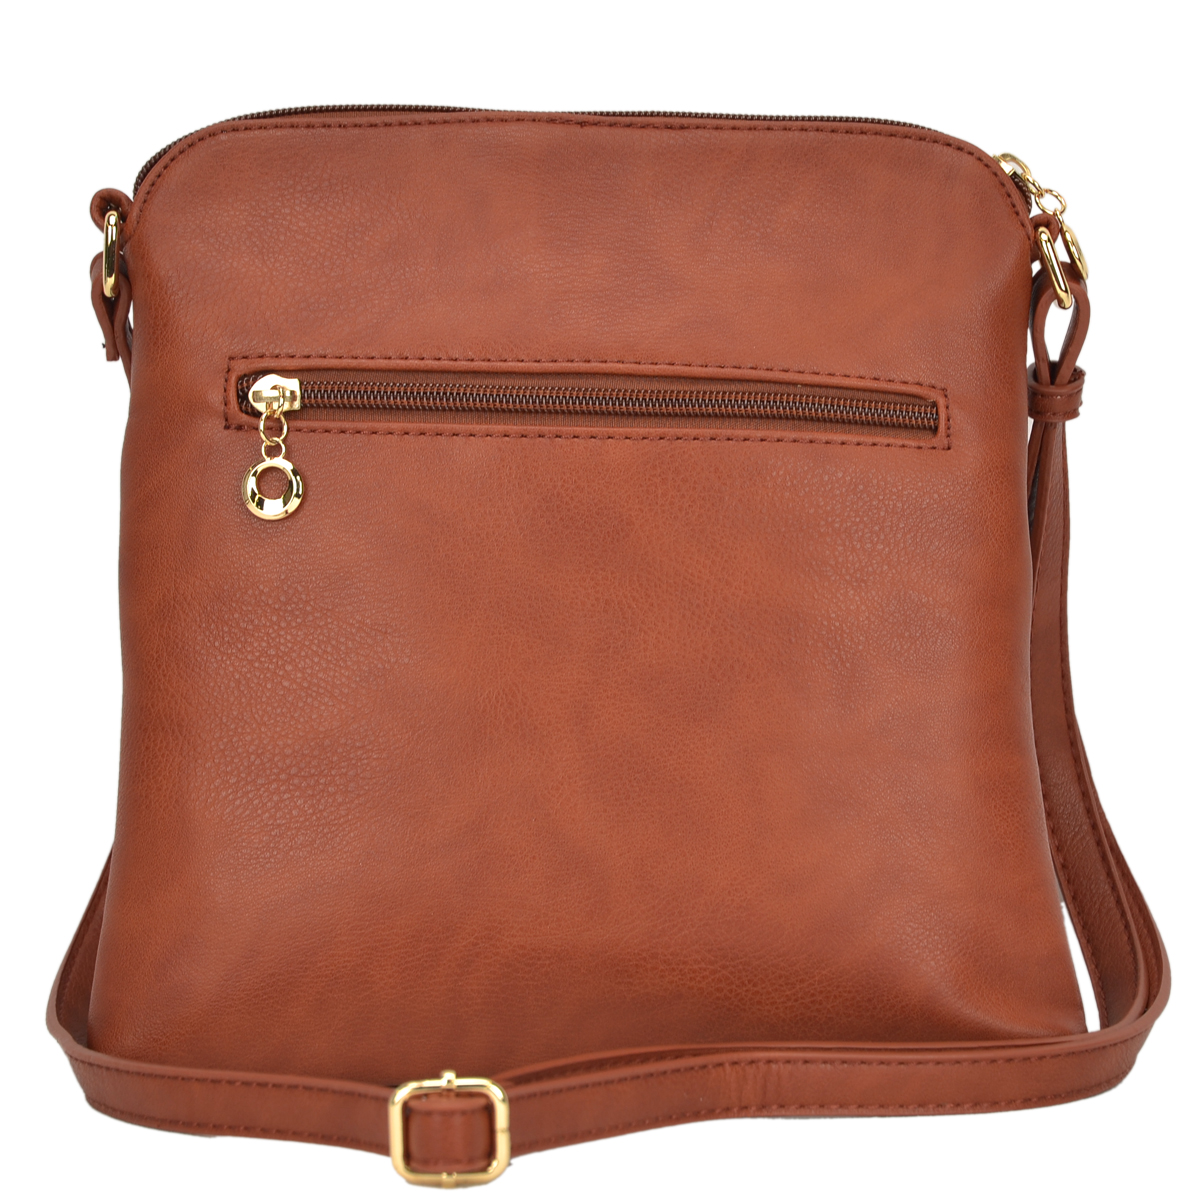 All-In-One Crossbody/ Messenger Bag with Front Decorative Tassel Zipper Pull